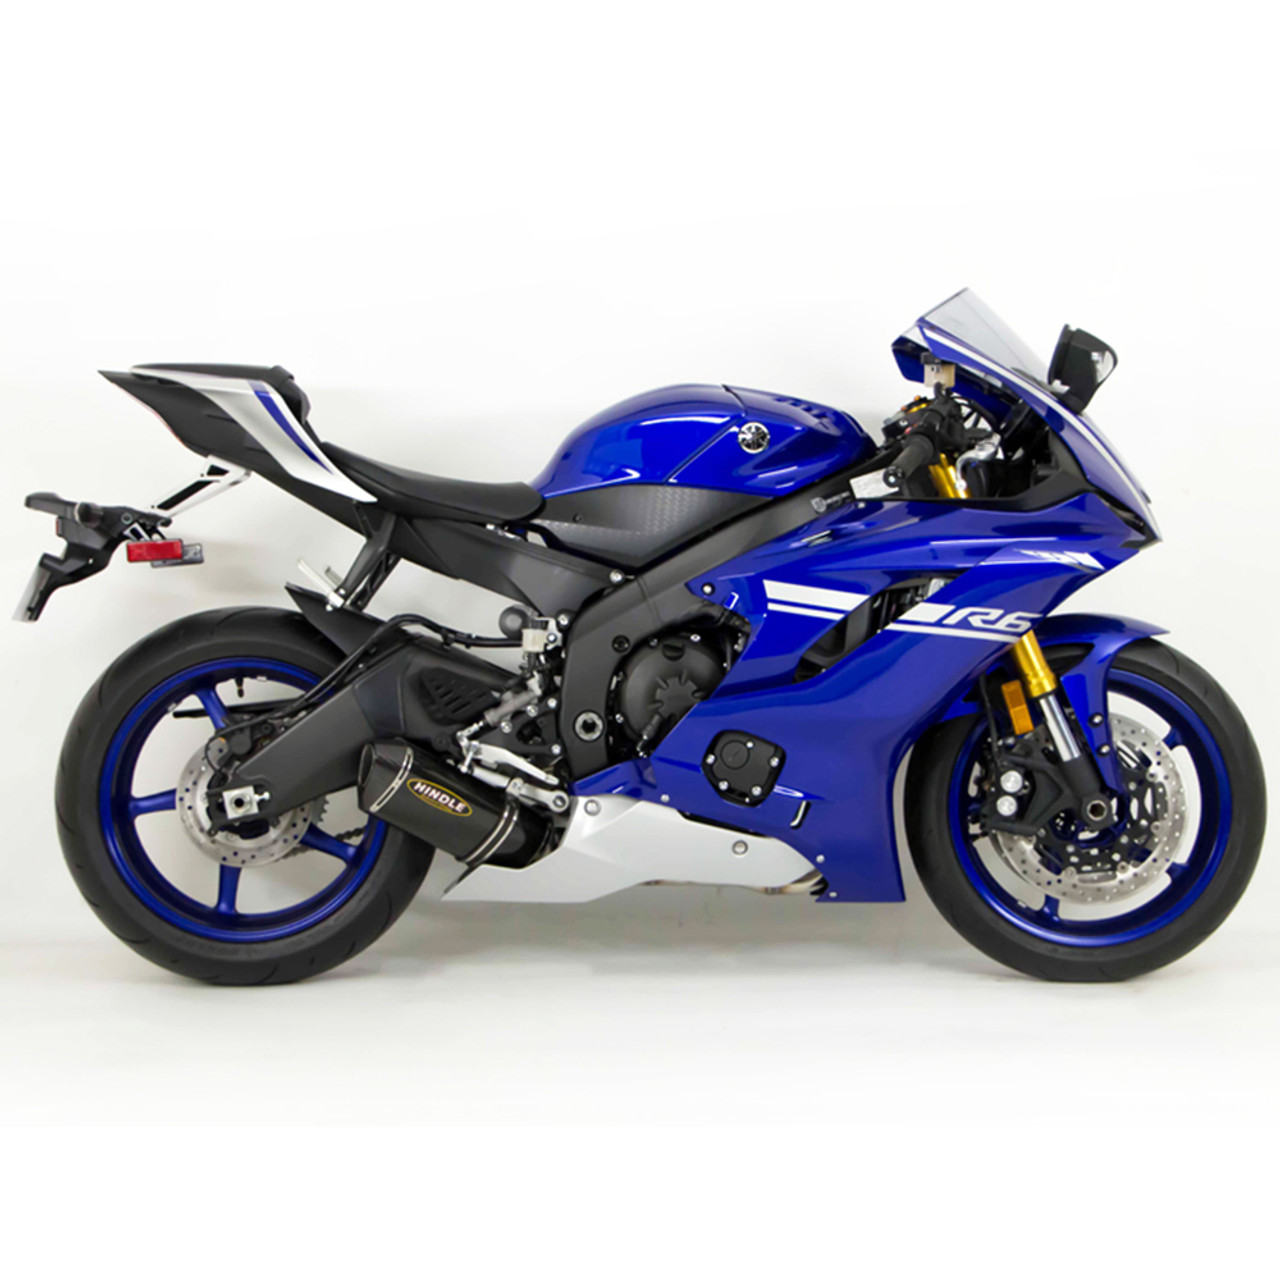 small resolution of 06 yamaha r6 wiring diagram wiring library r6 track bike wiring diagram wiring diagram 2000 r6